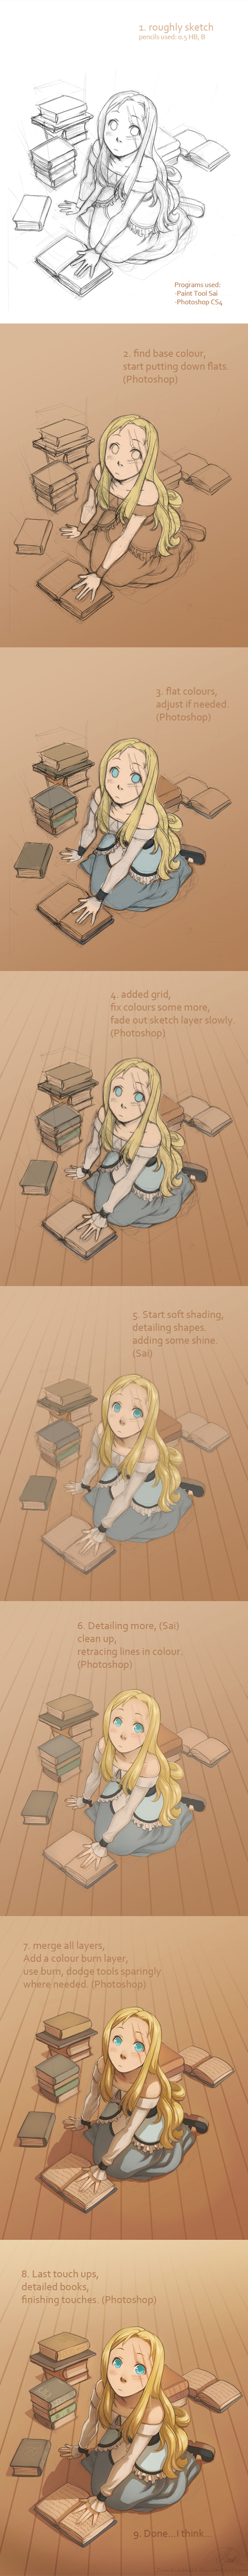 Goldie step-by-step by Zombiesmile